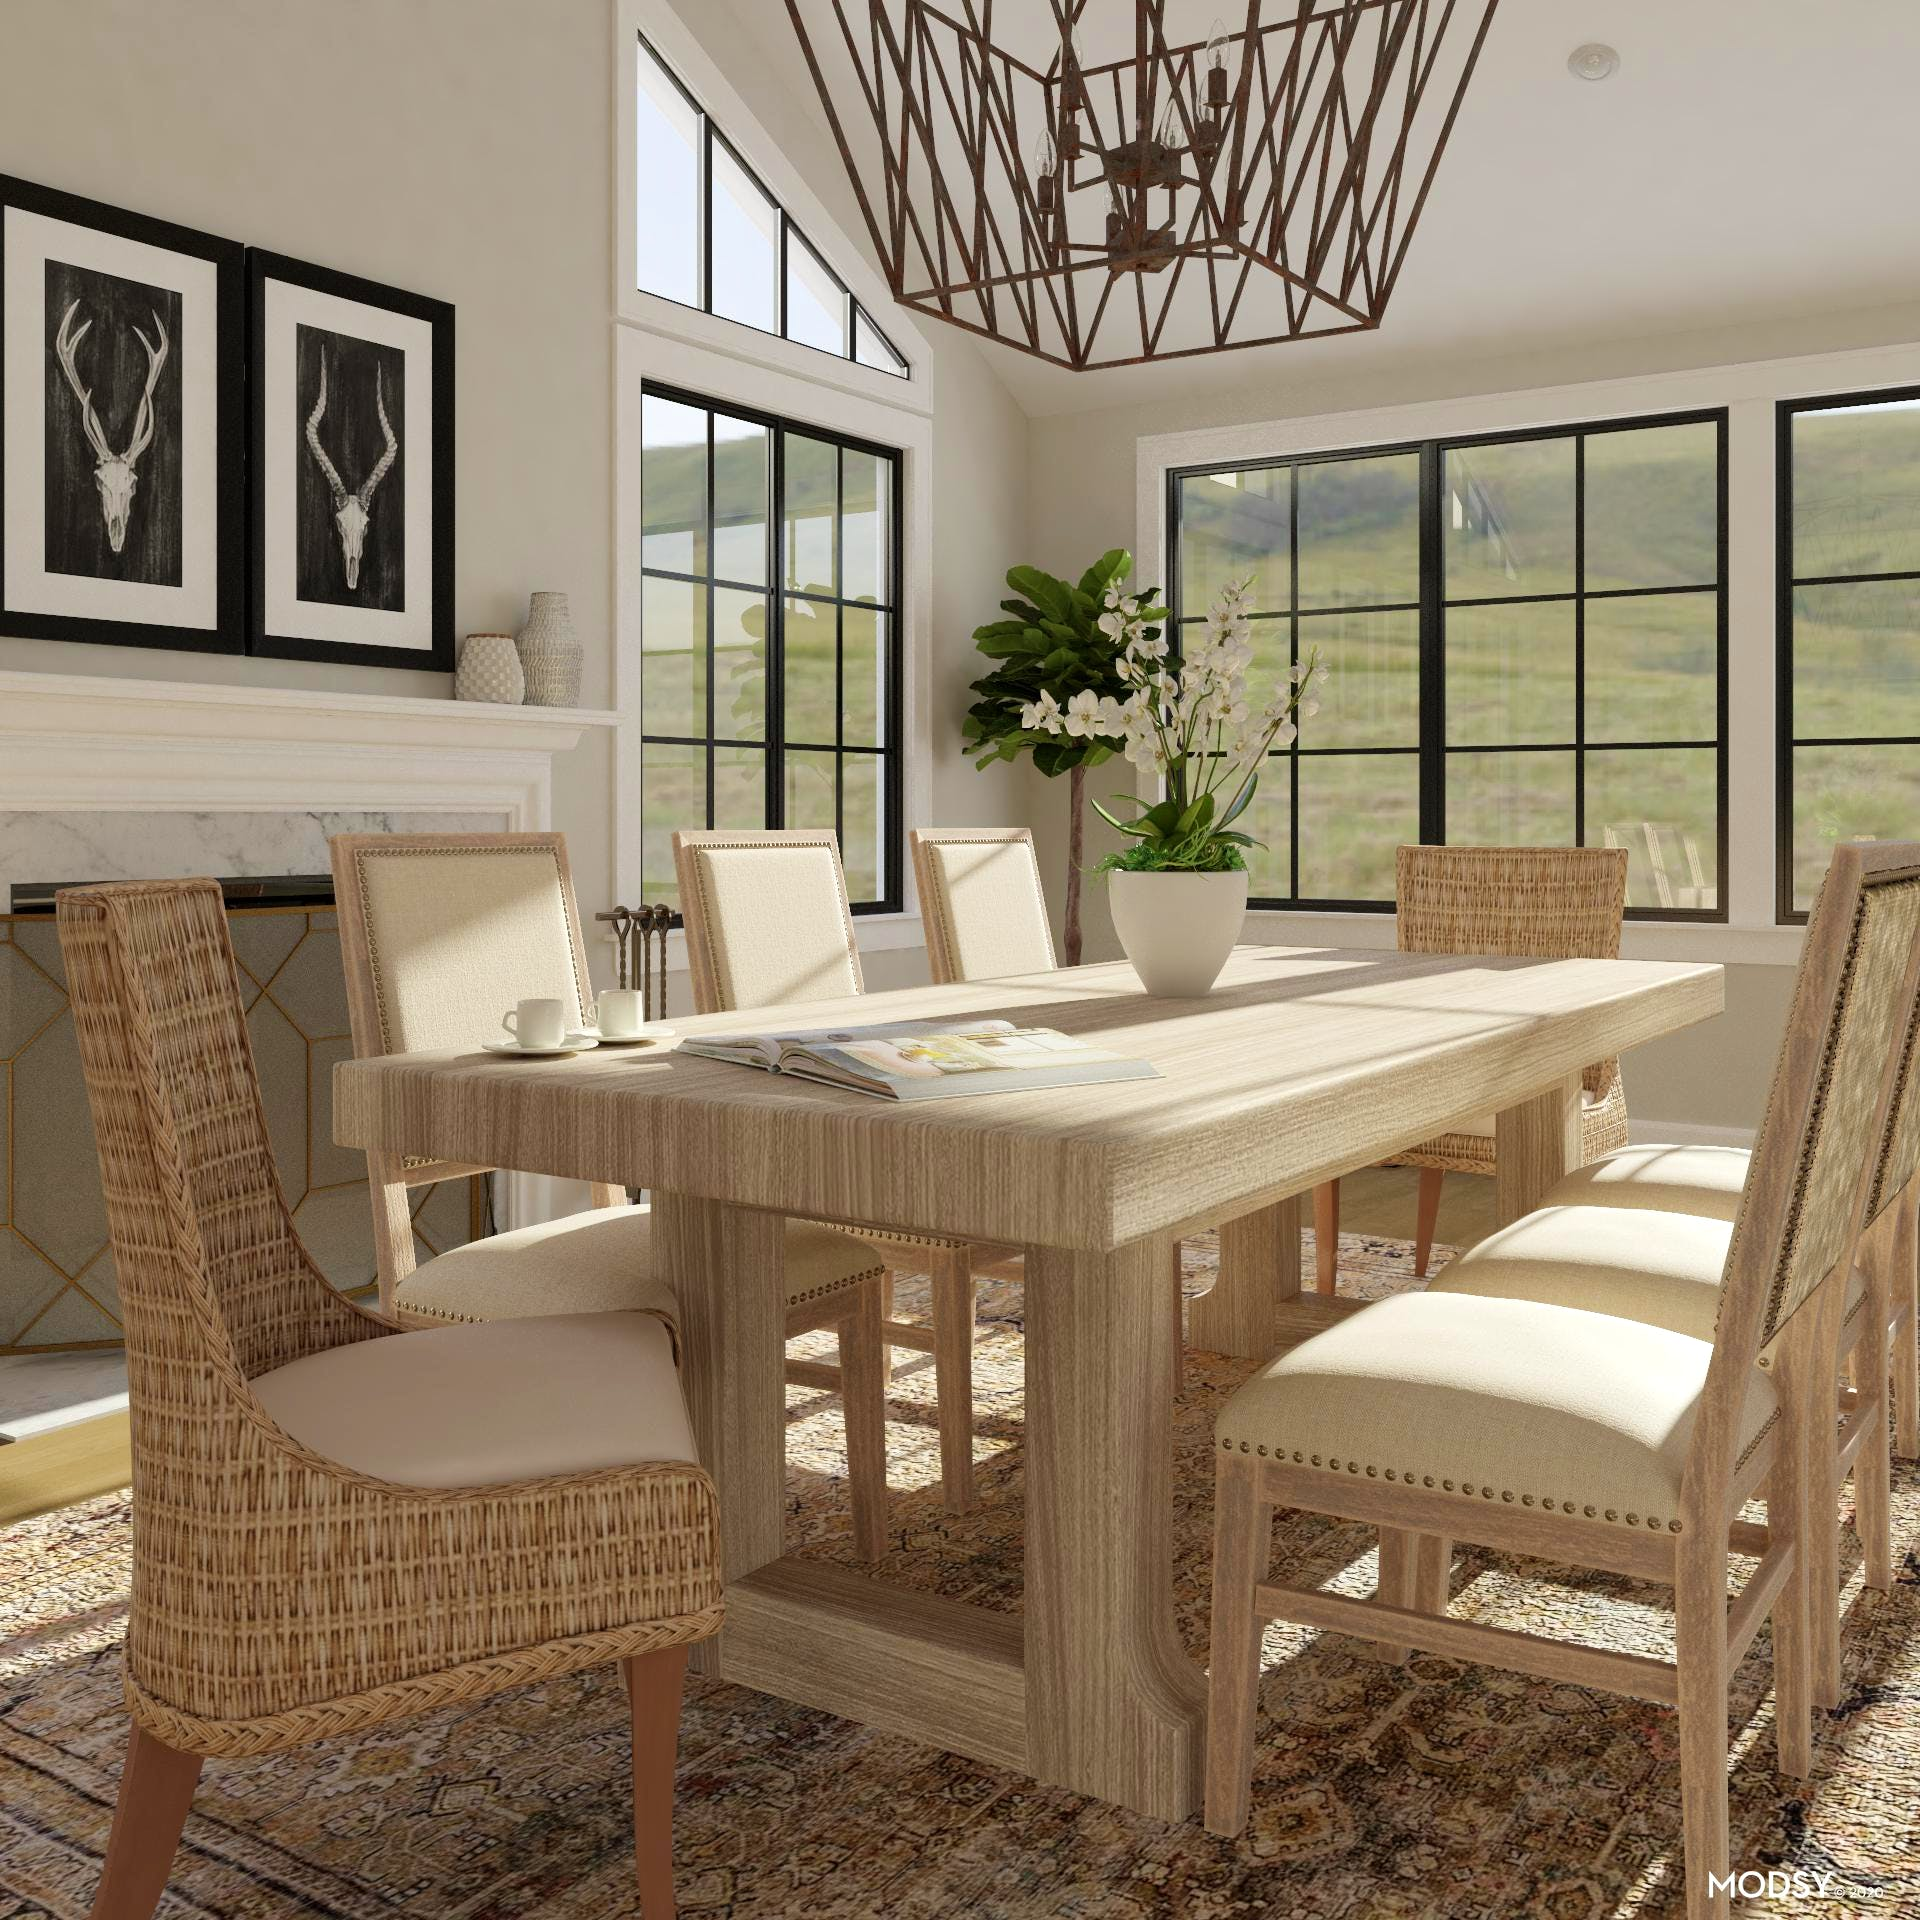 Understated Rustic Dining Room